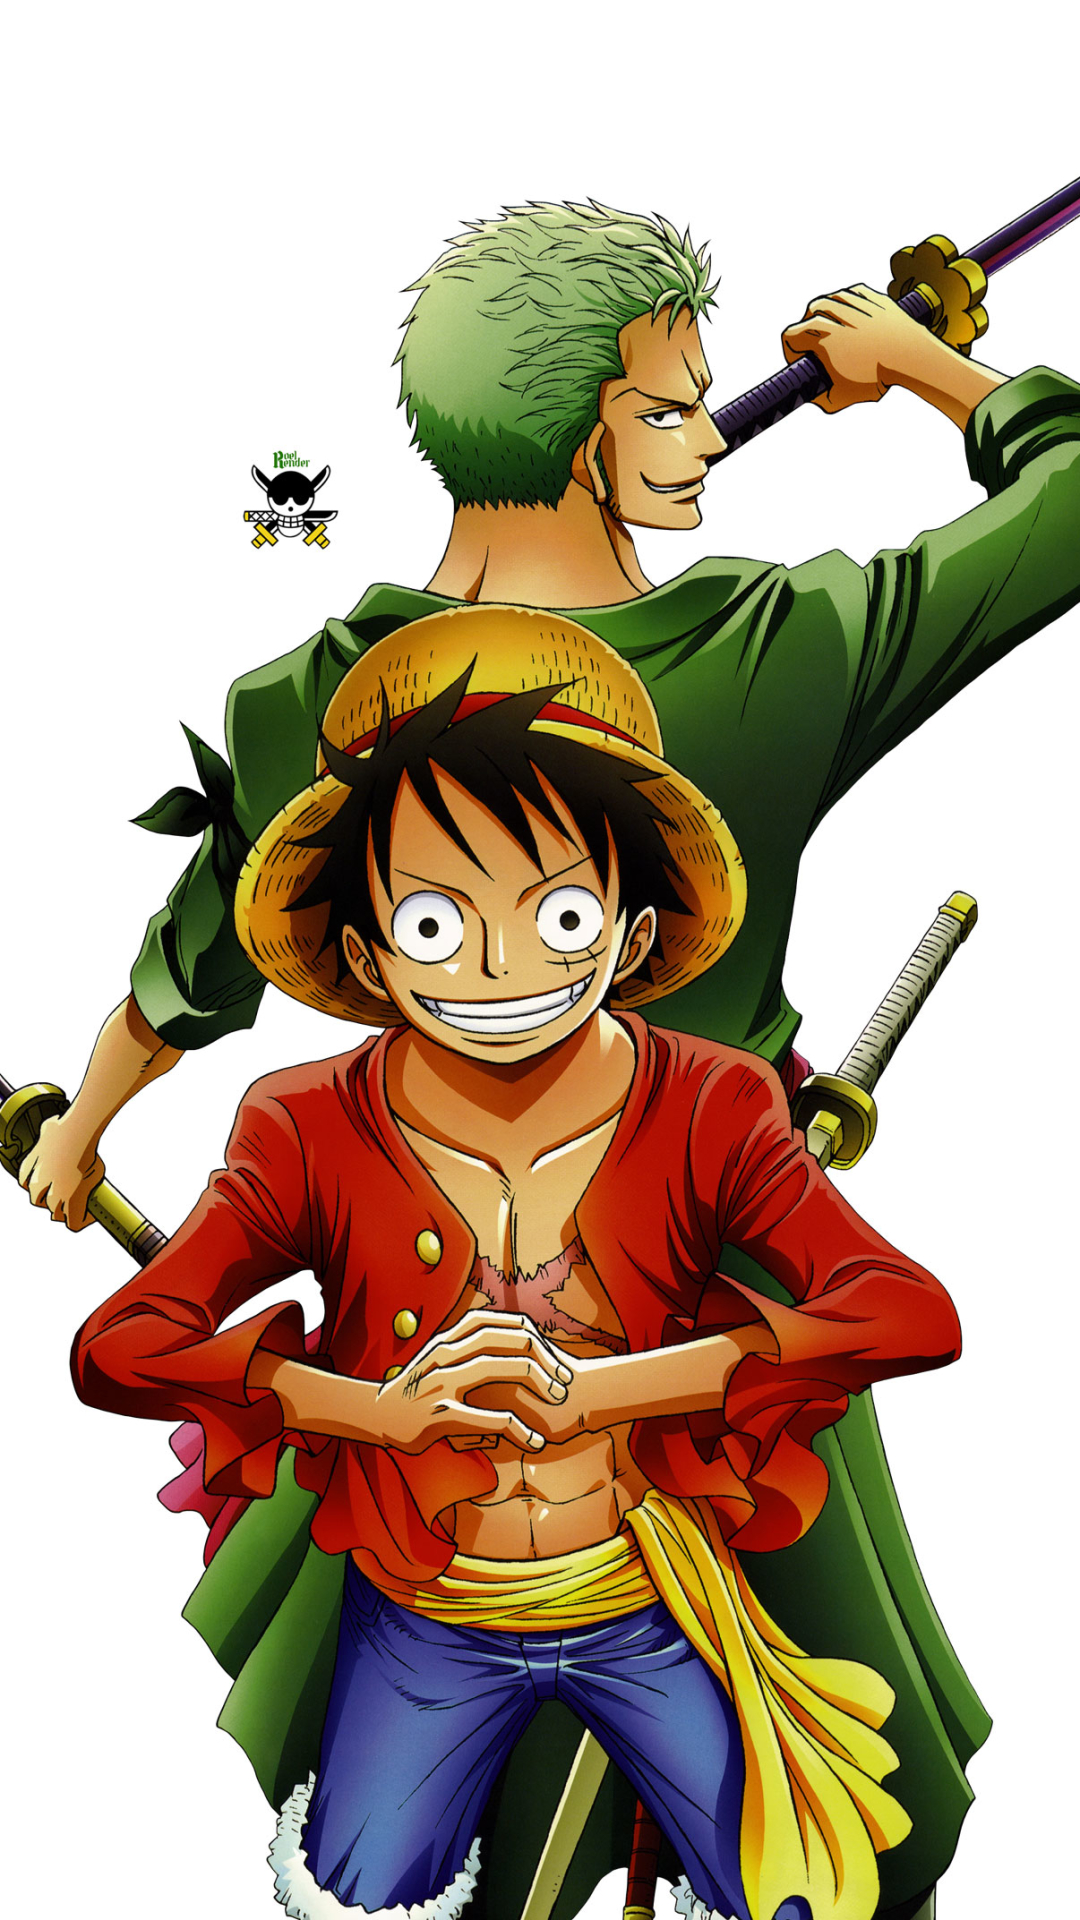 One Piece Wallpaper Luffy And Zoro 2287668 Hd Wallpaper Backgrounds Download